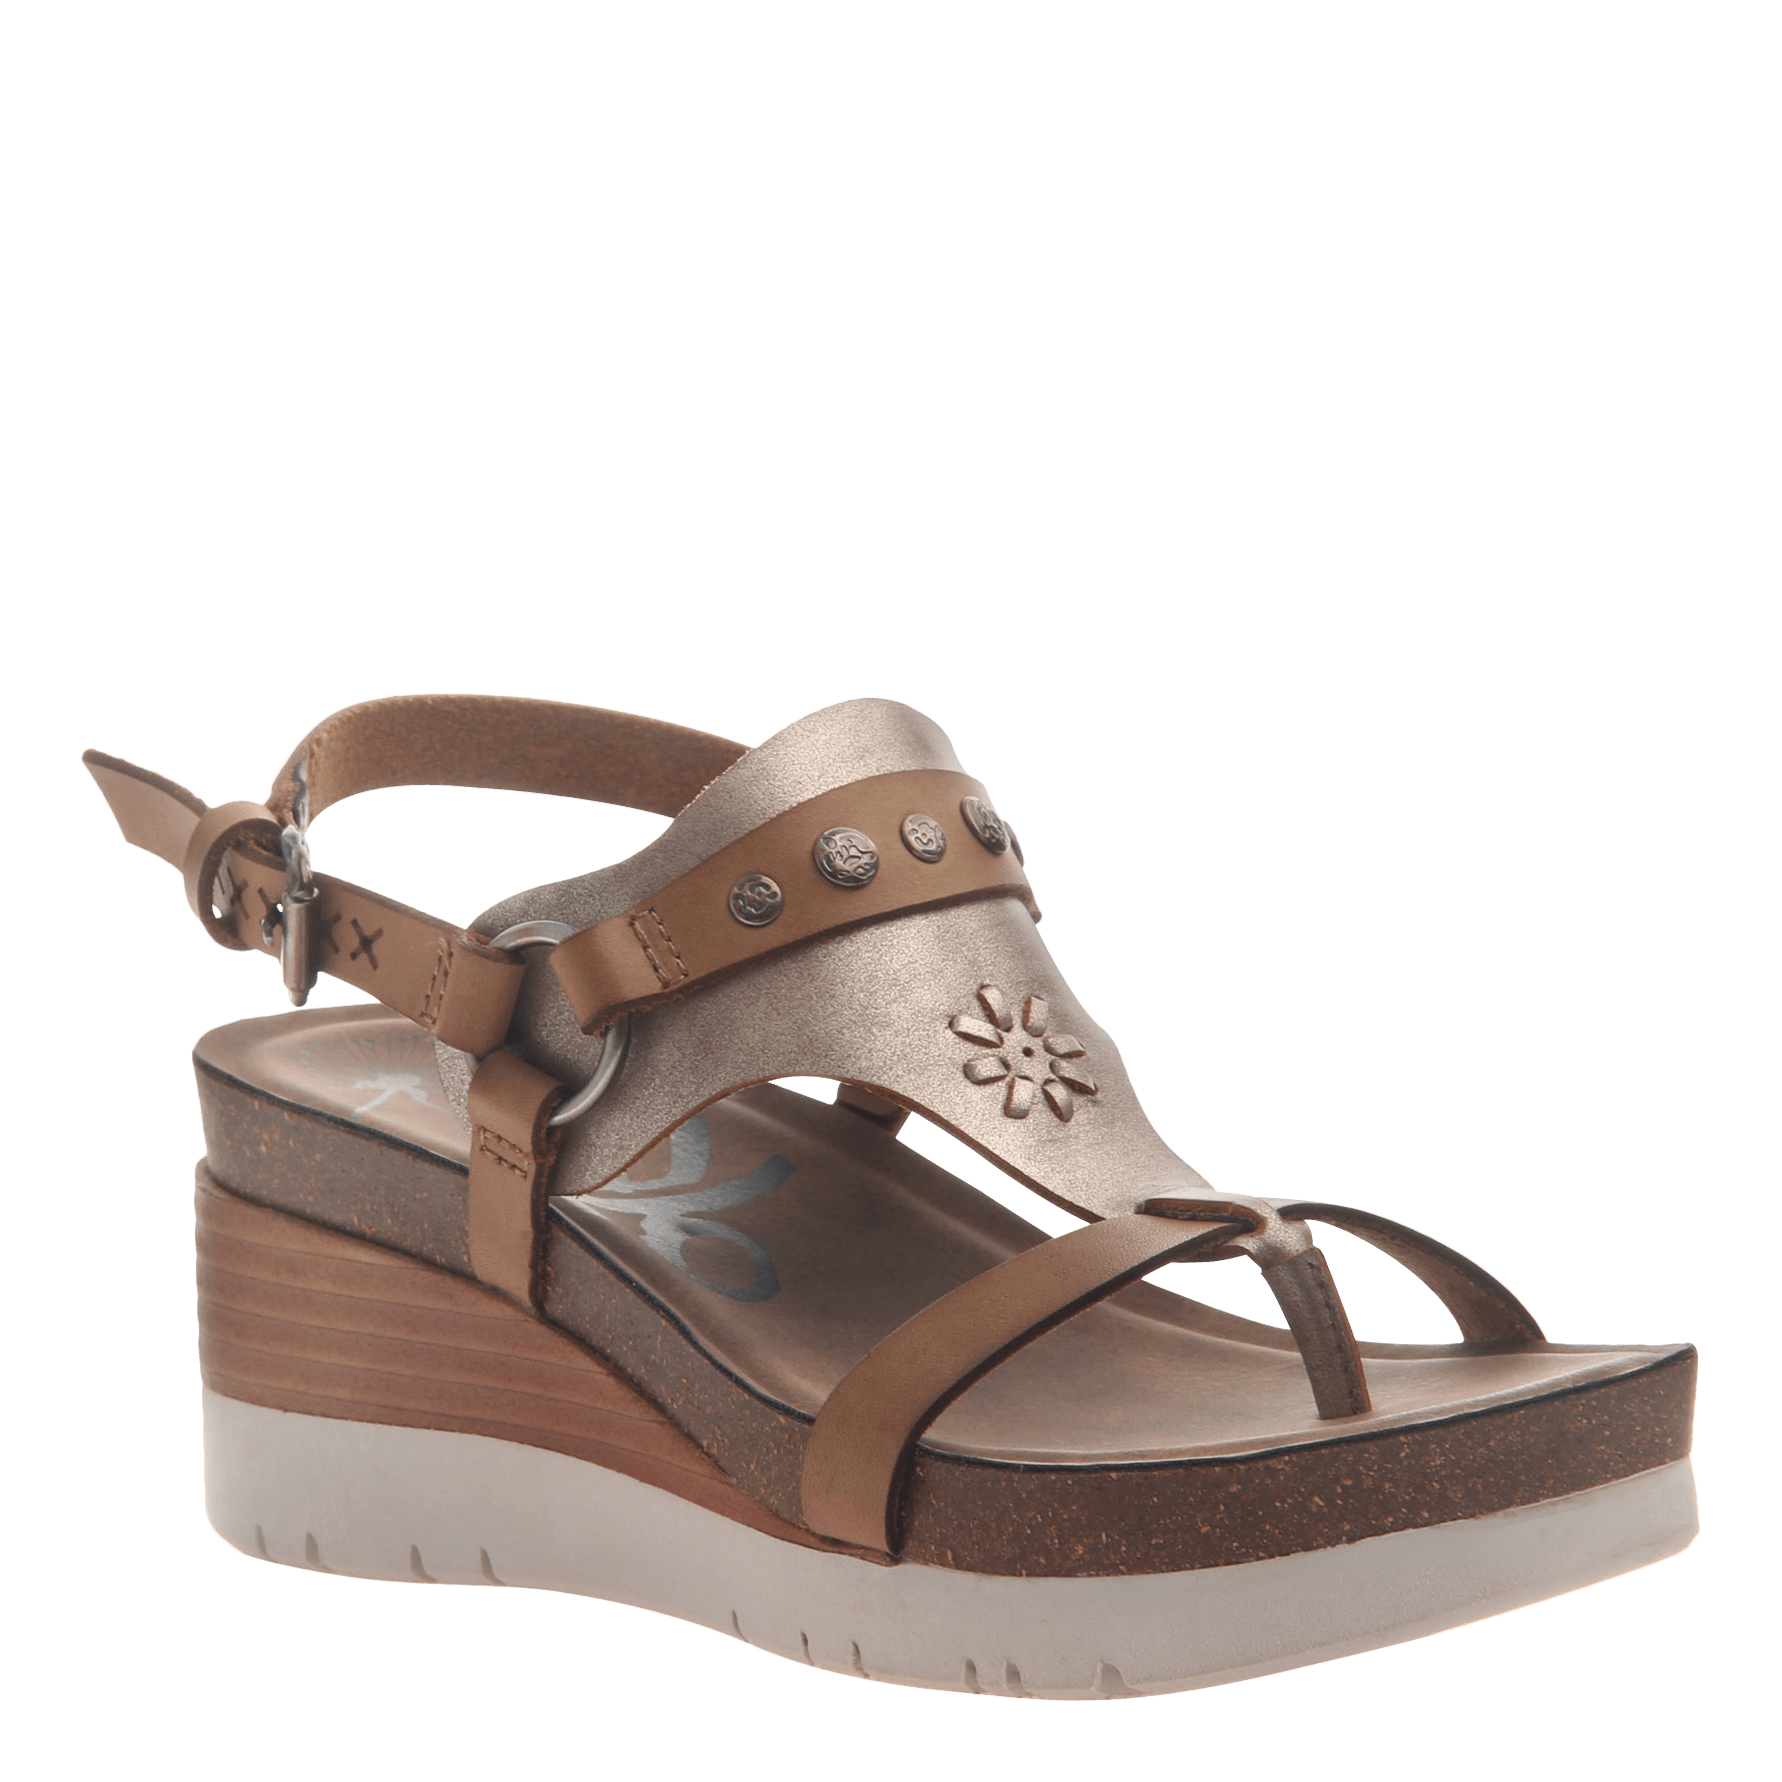 48f37e71863 Maverick in New Taupe Wedge Sandals